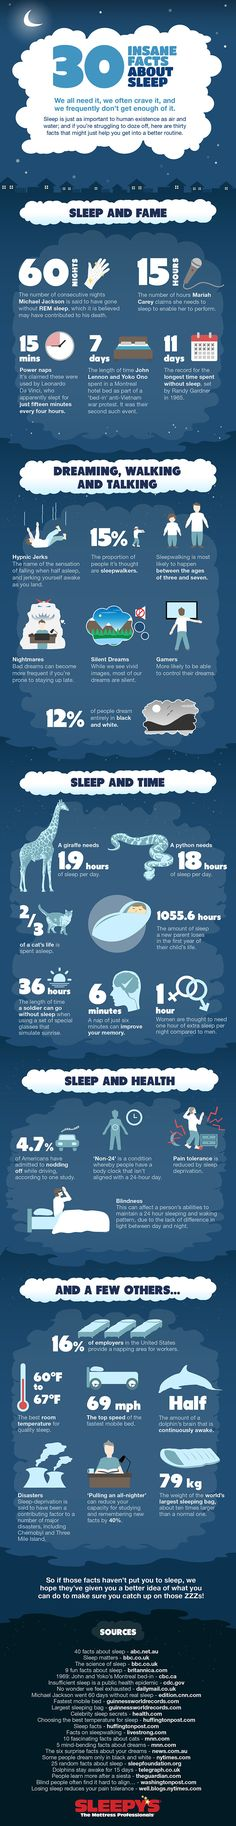 30 Insane Facts About Sleep   #Sleep #Dream #infographic #facts